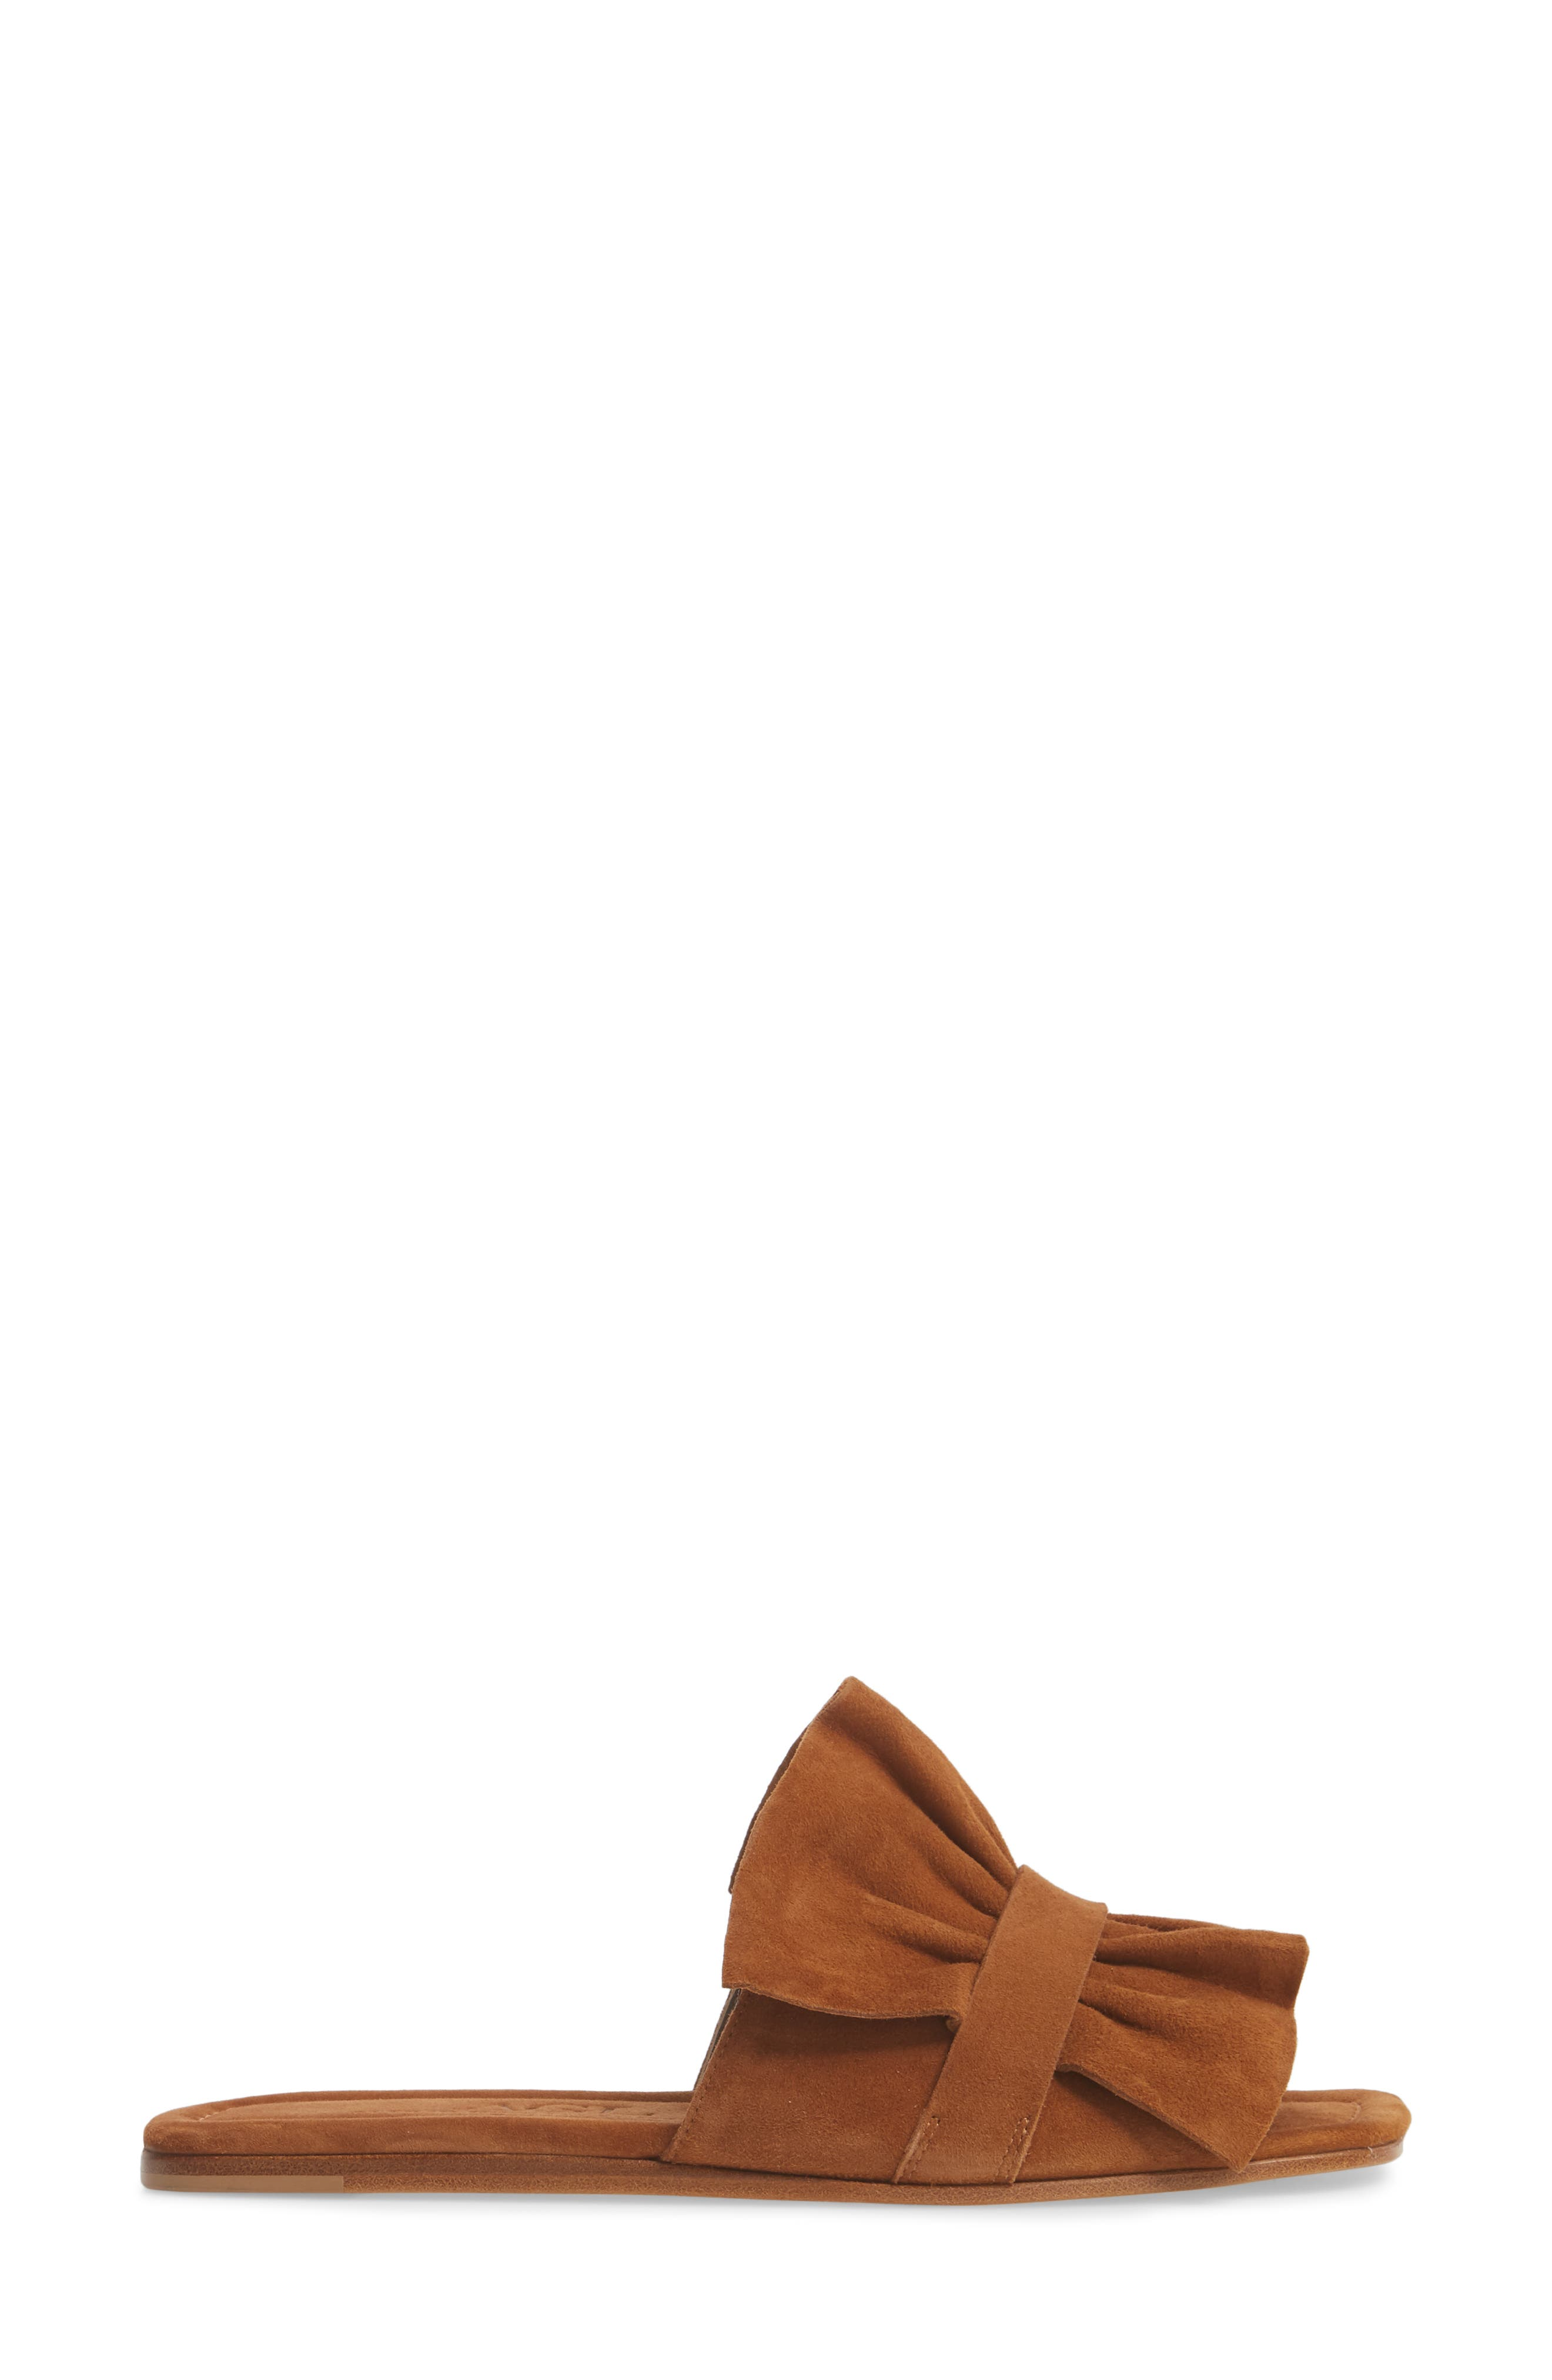 Ruched Slide Sandal,                             Alternate thumbnail 3, color,                             245